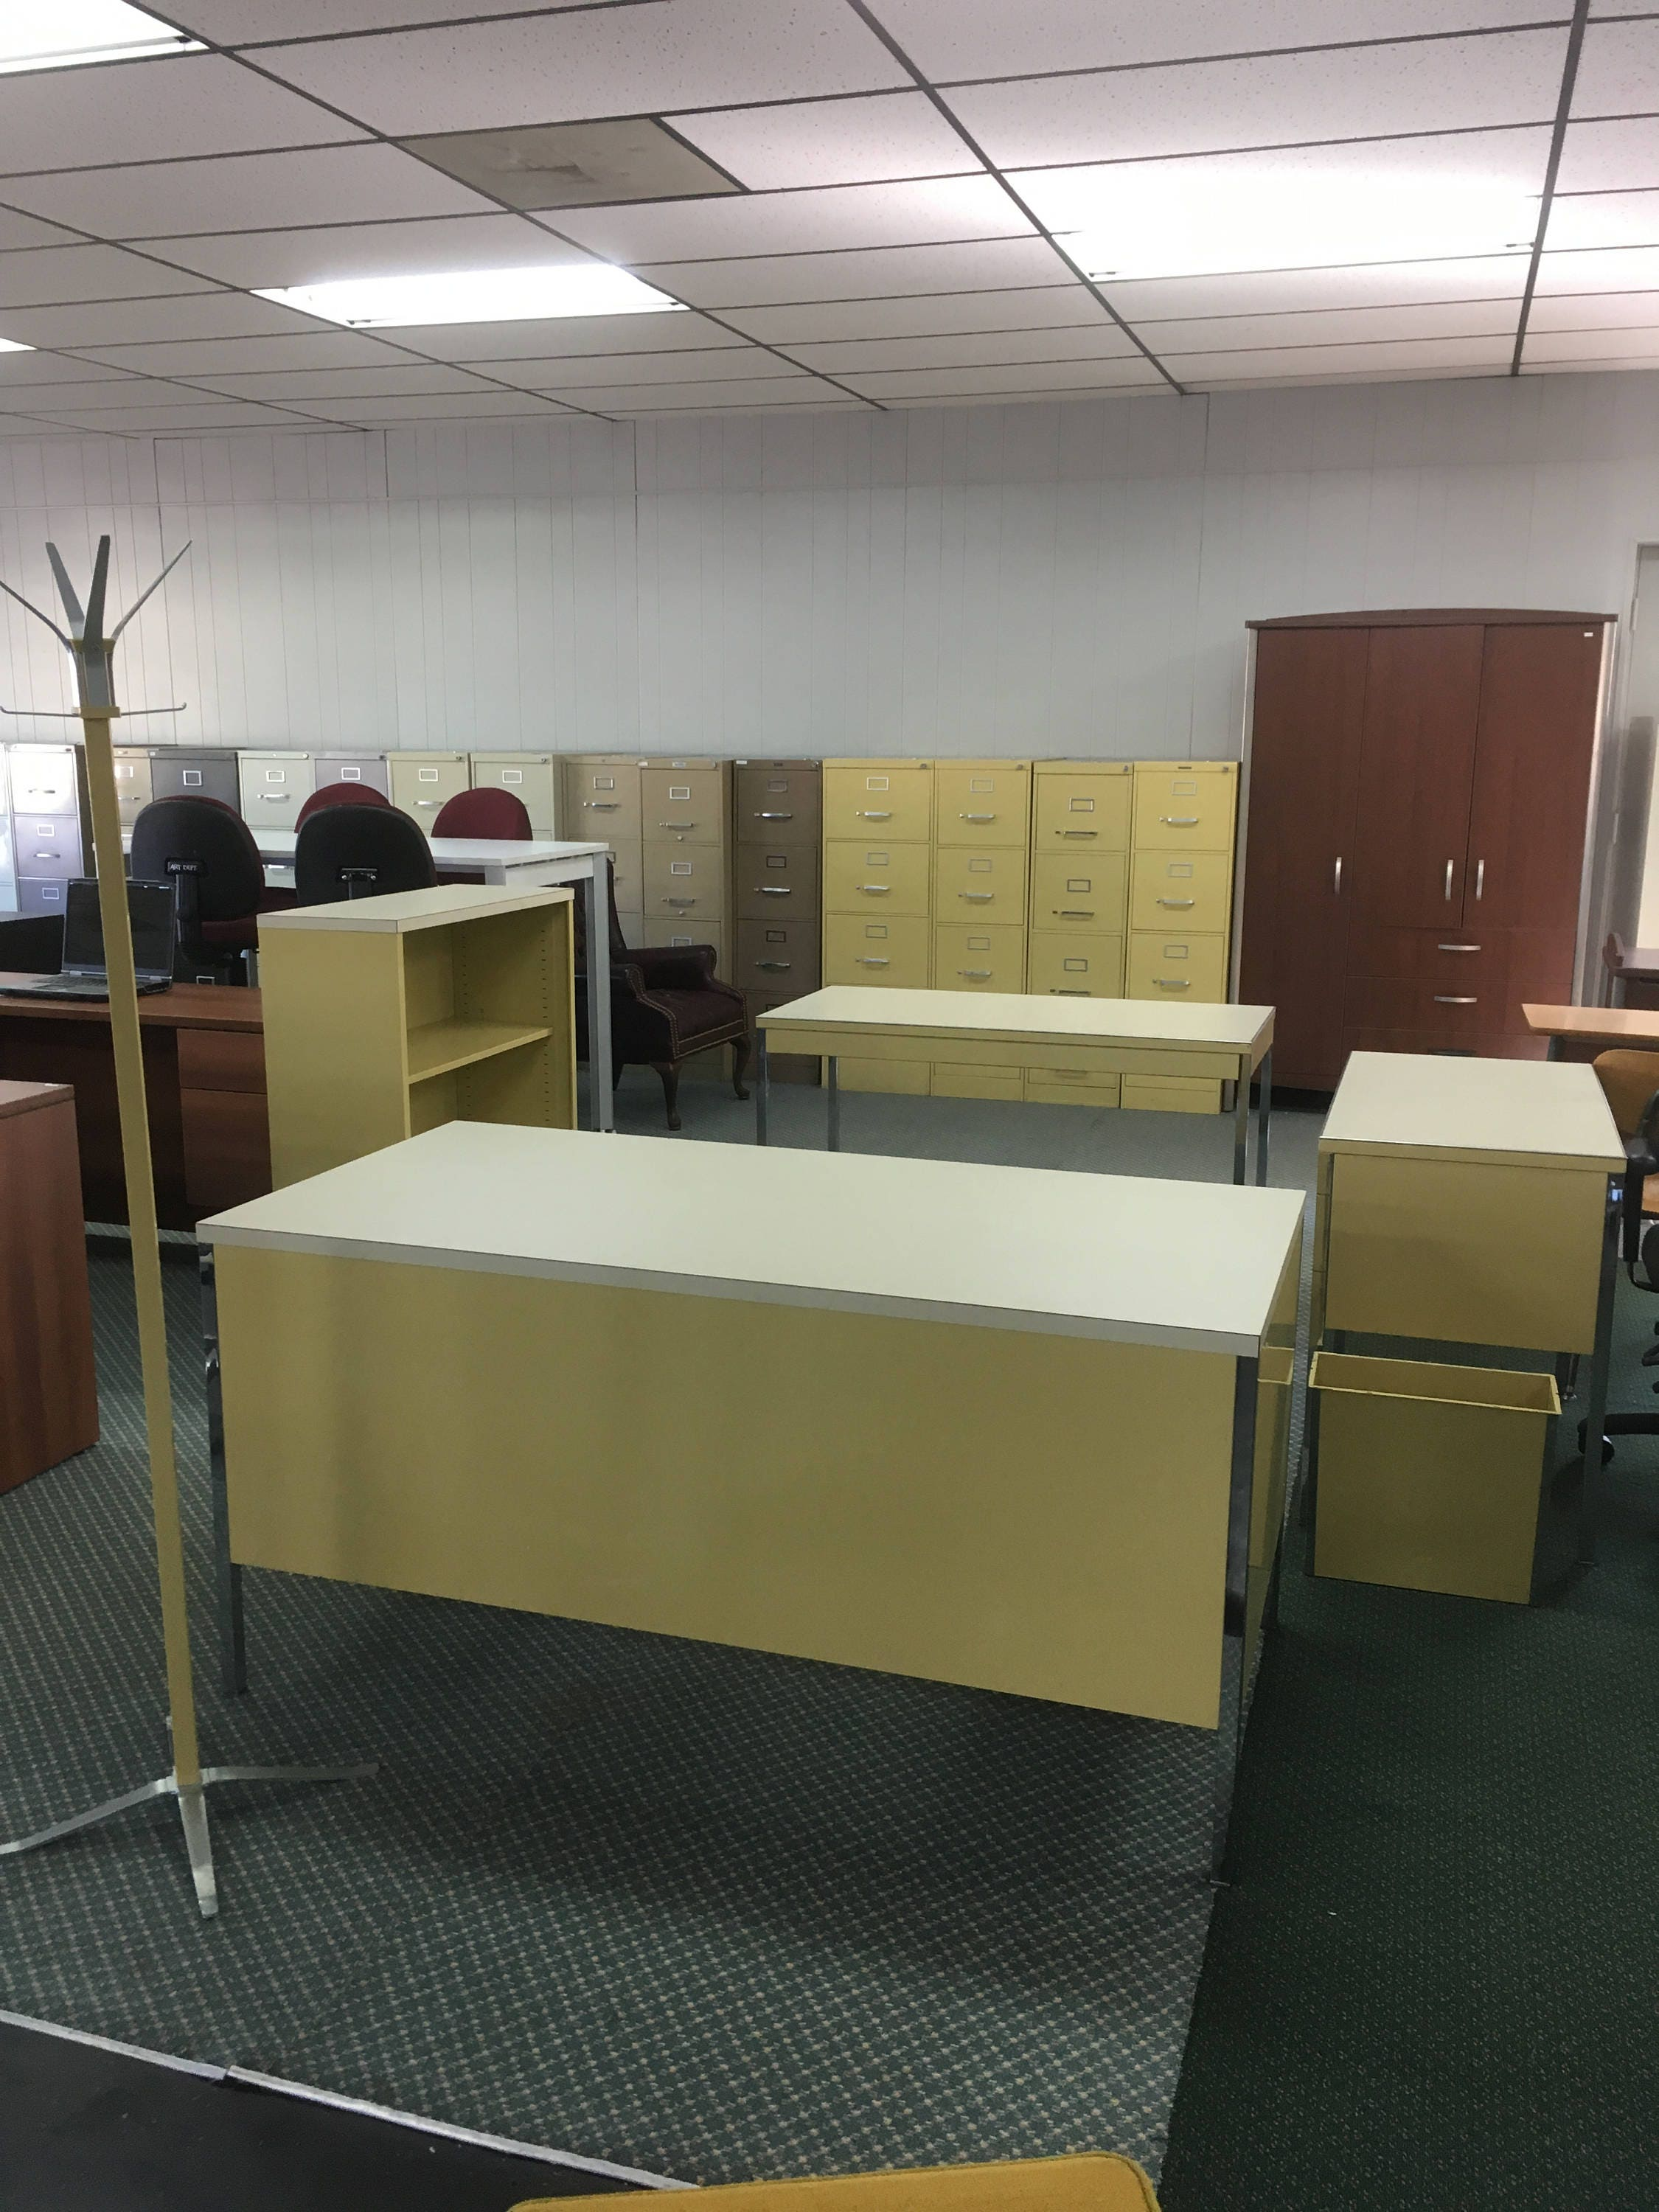 reception furniture quality orange desk qubix hampshire view in yellow left office hand front hof